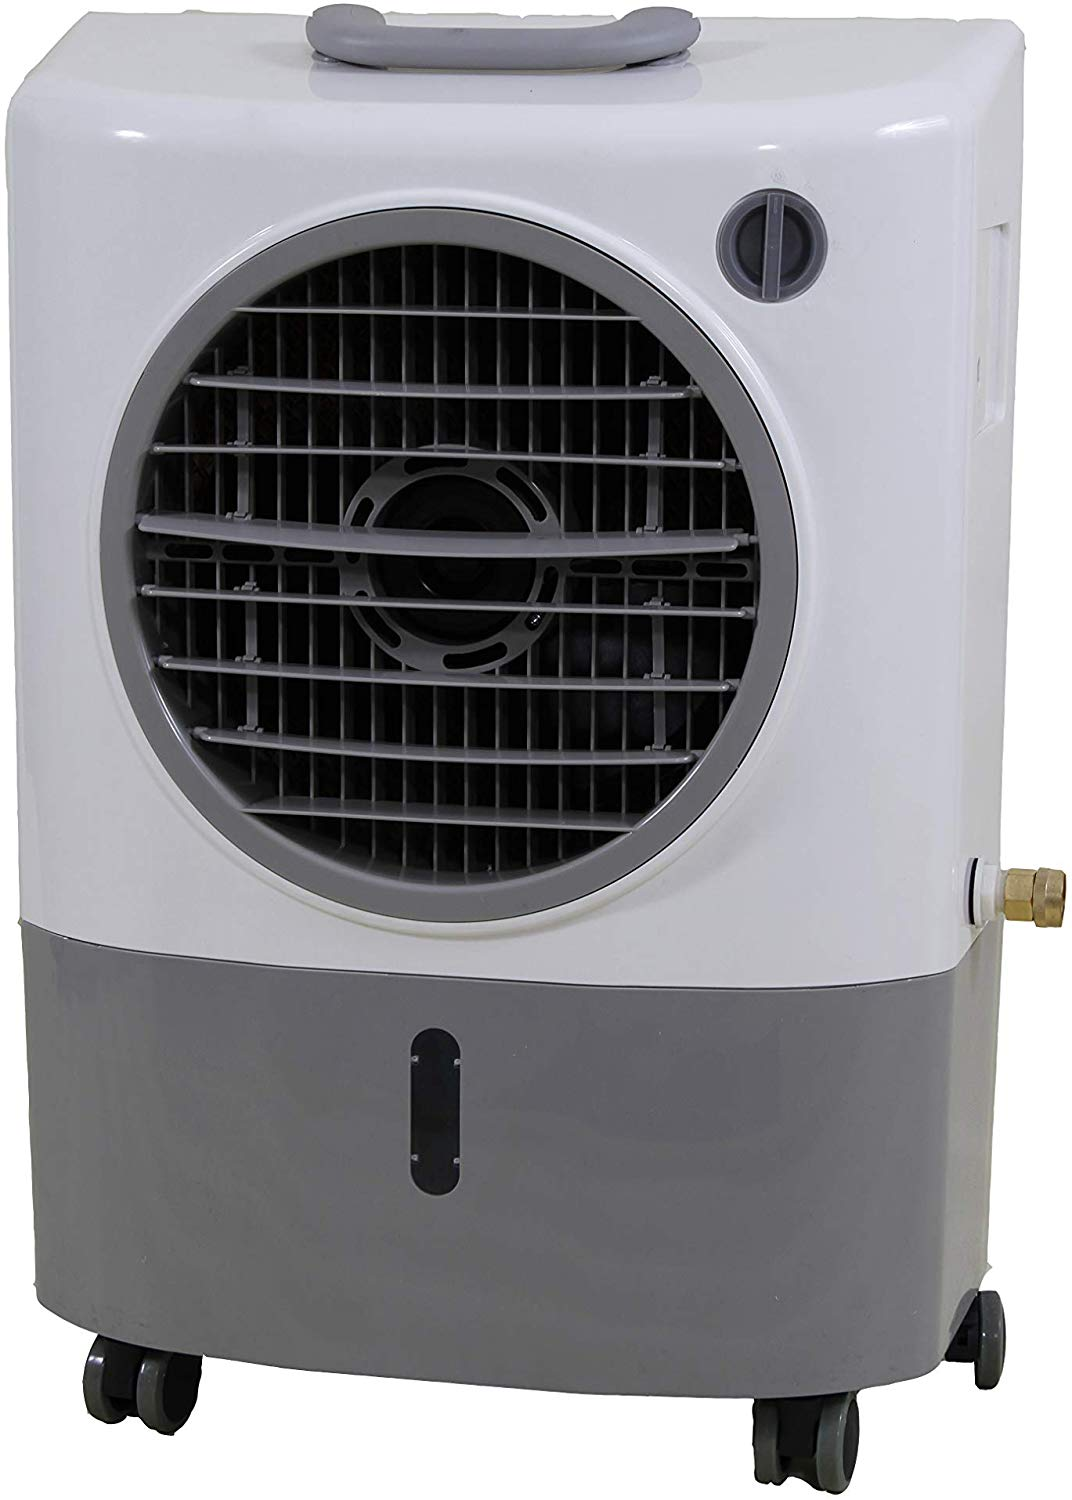 Cost-efficient cooler that is easily set up